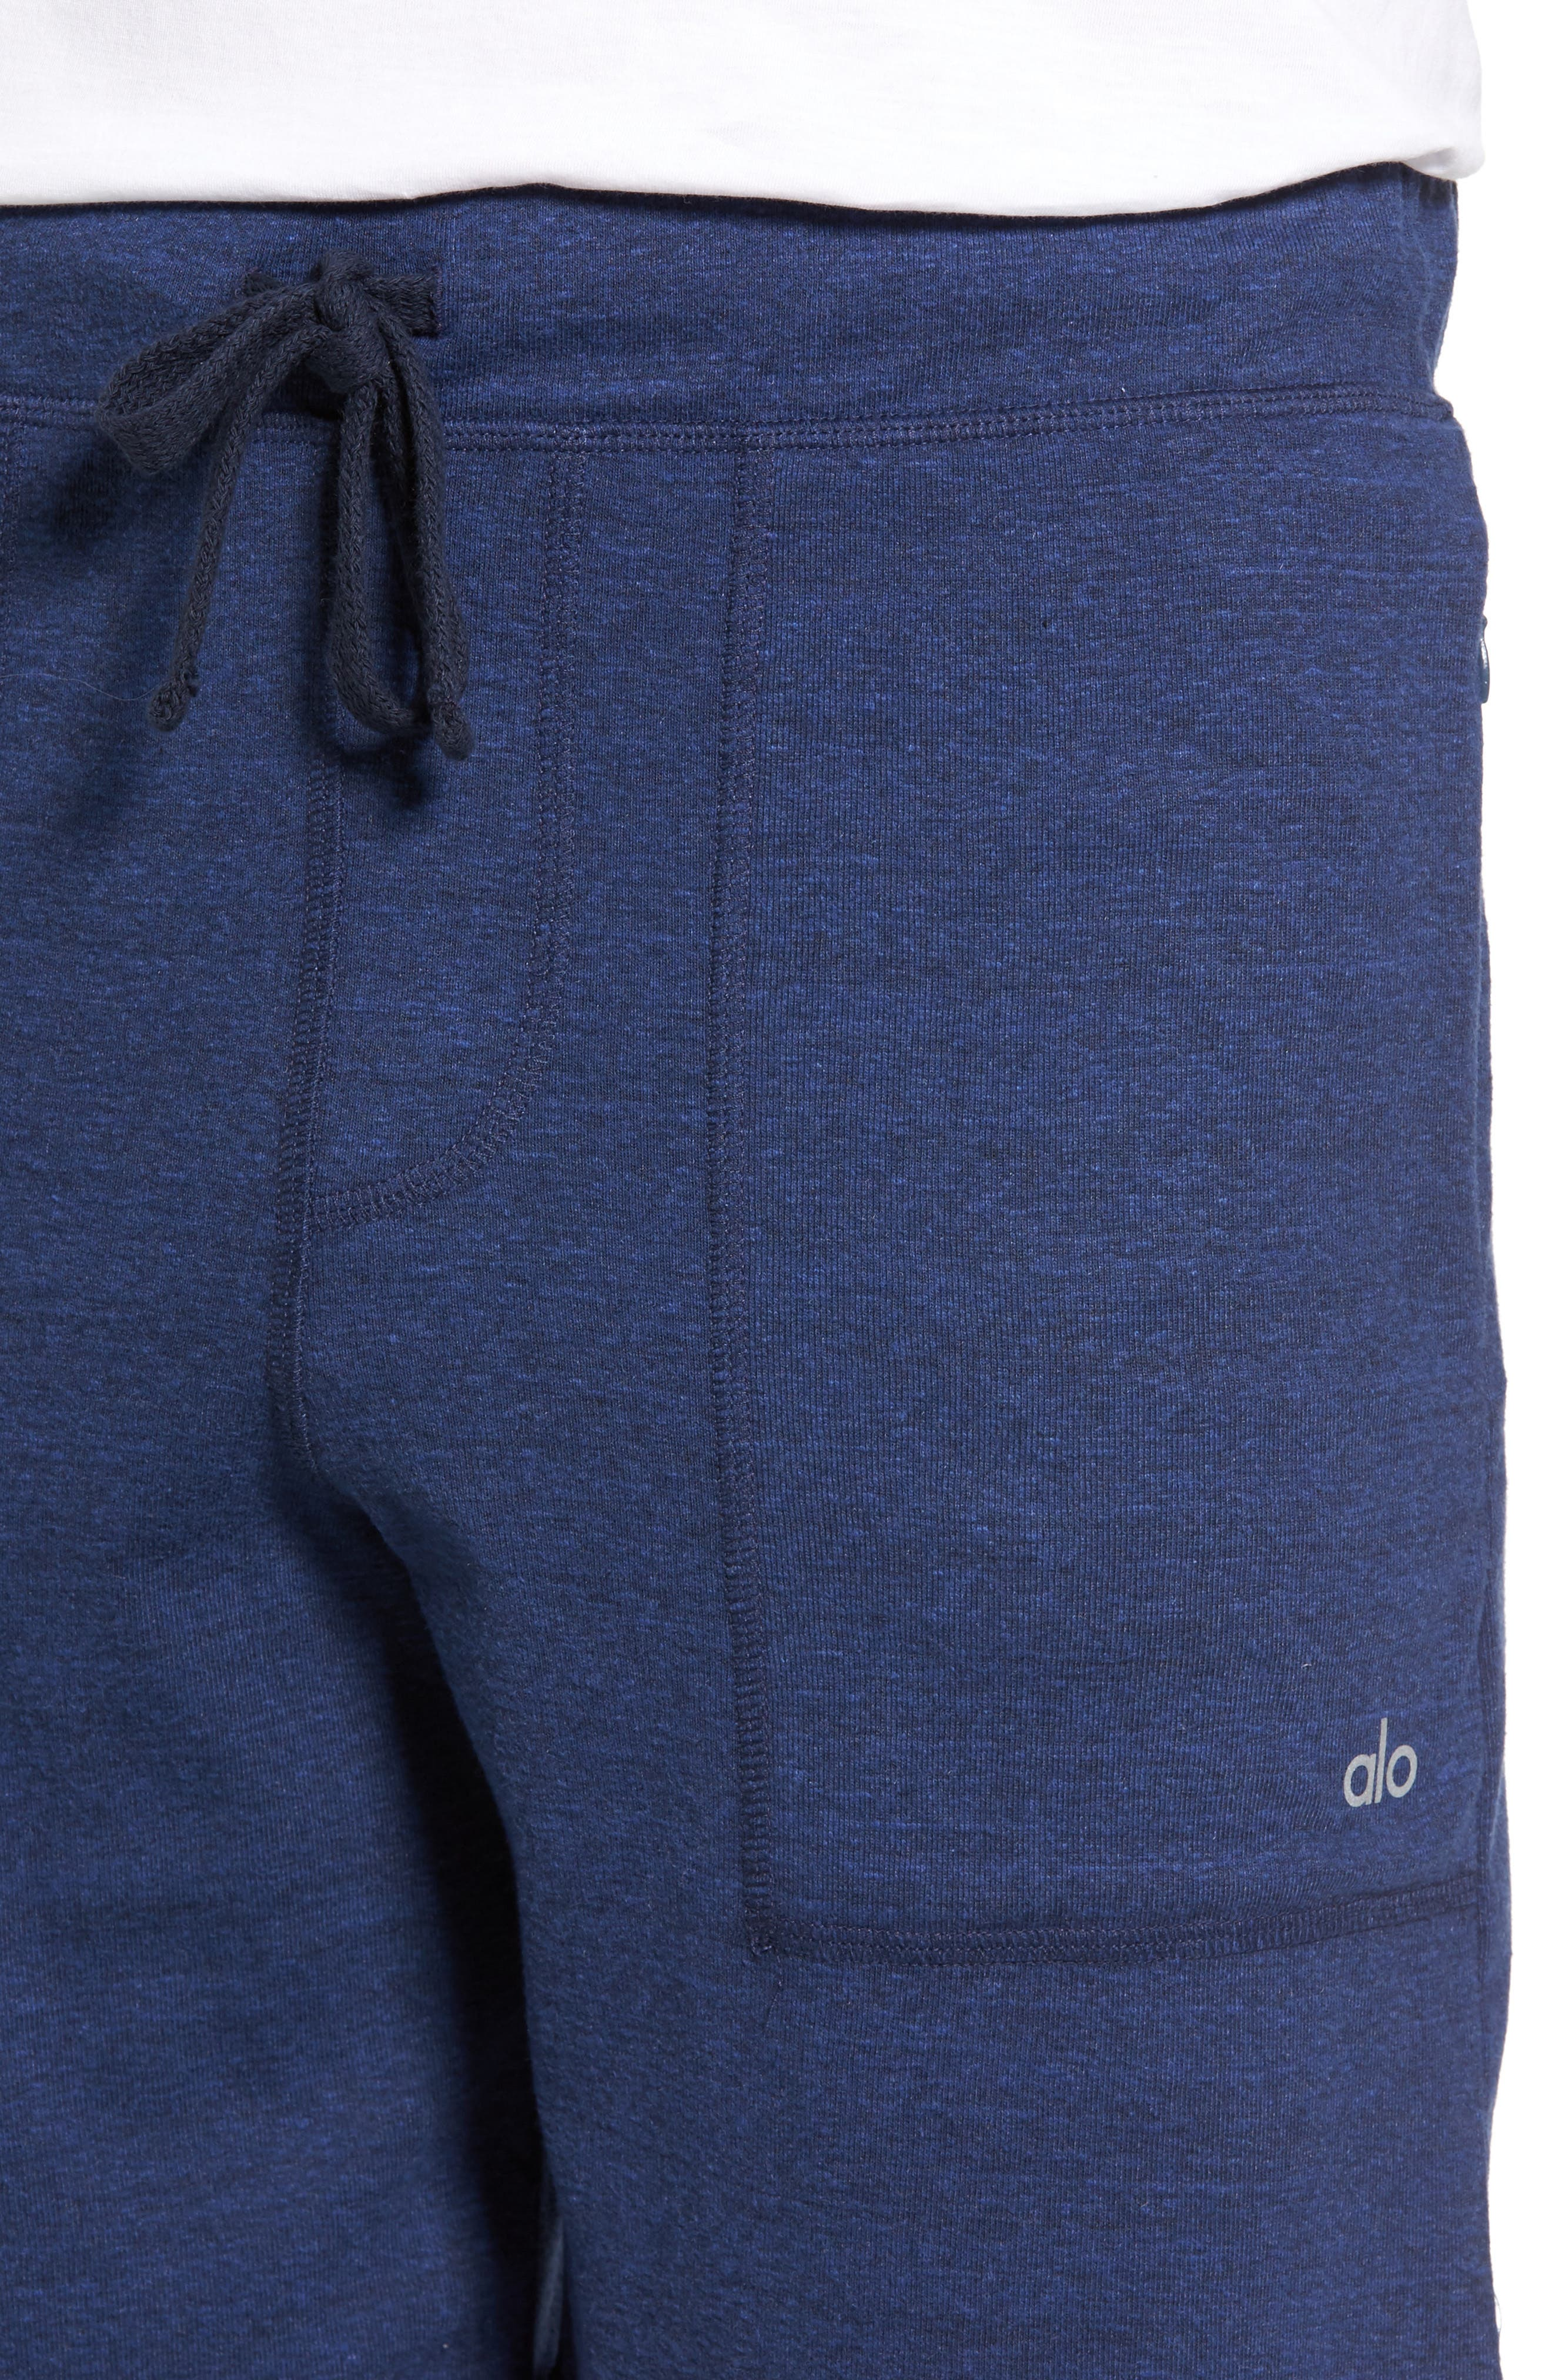 Revival Relaxed Knit Shorts,                             Alternate thumbnail 3, color,                             Navy Triblend